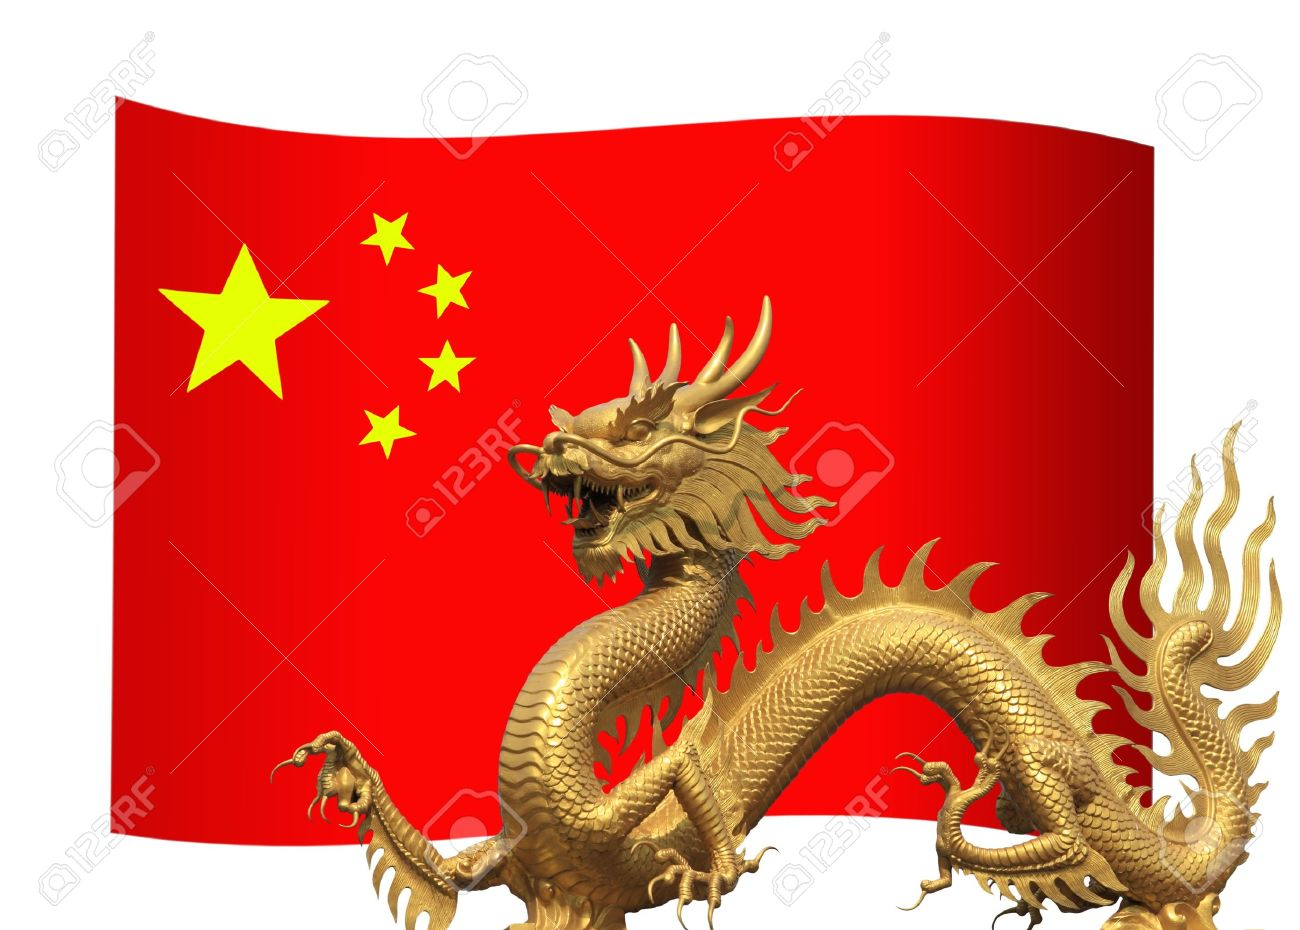 China Flag With Golden Dragon Stock Photo Picture And Royalty - China flag